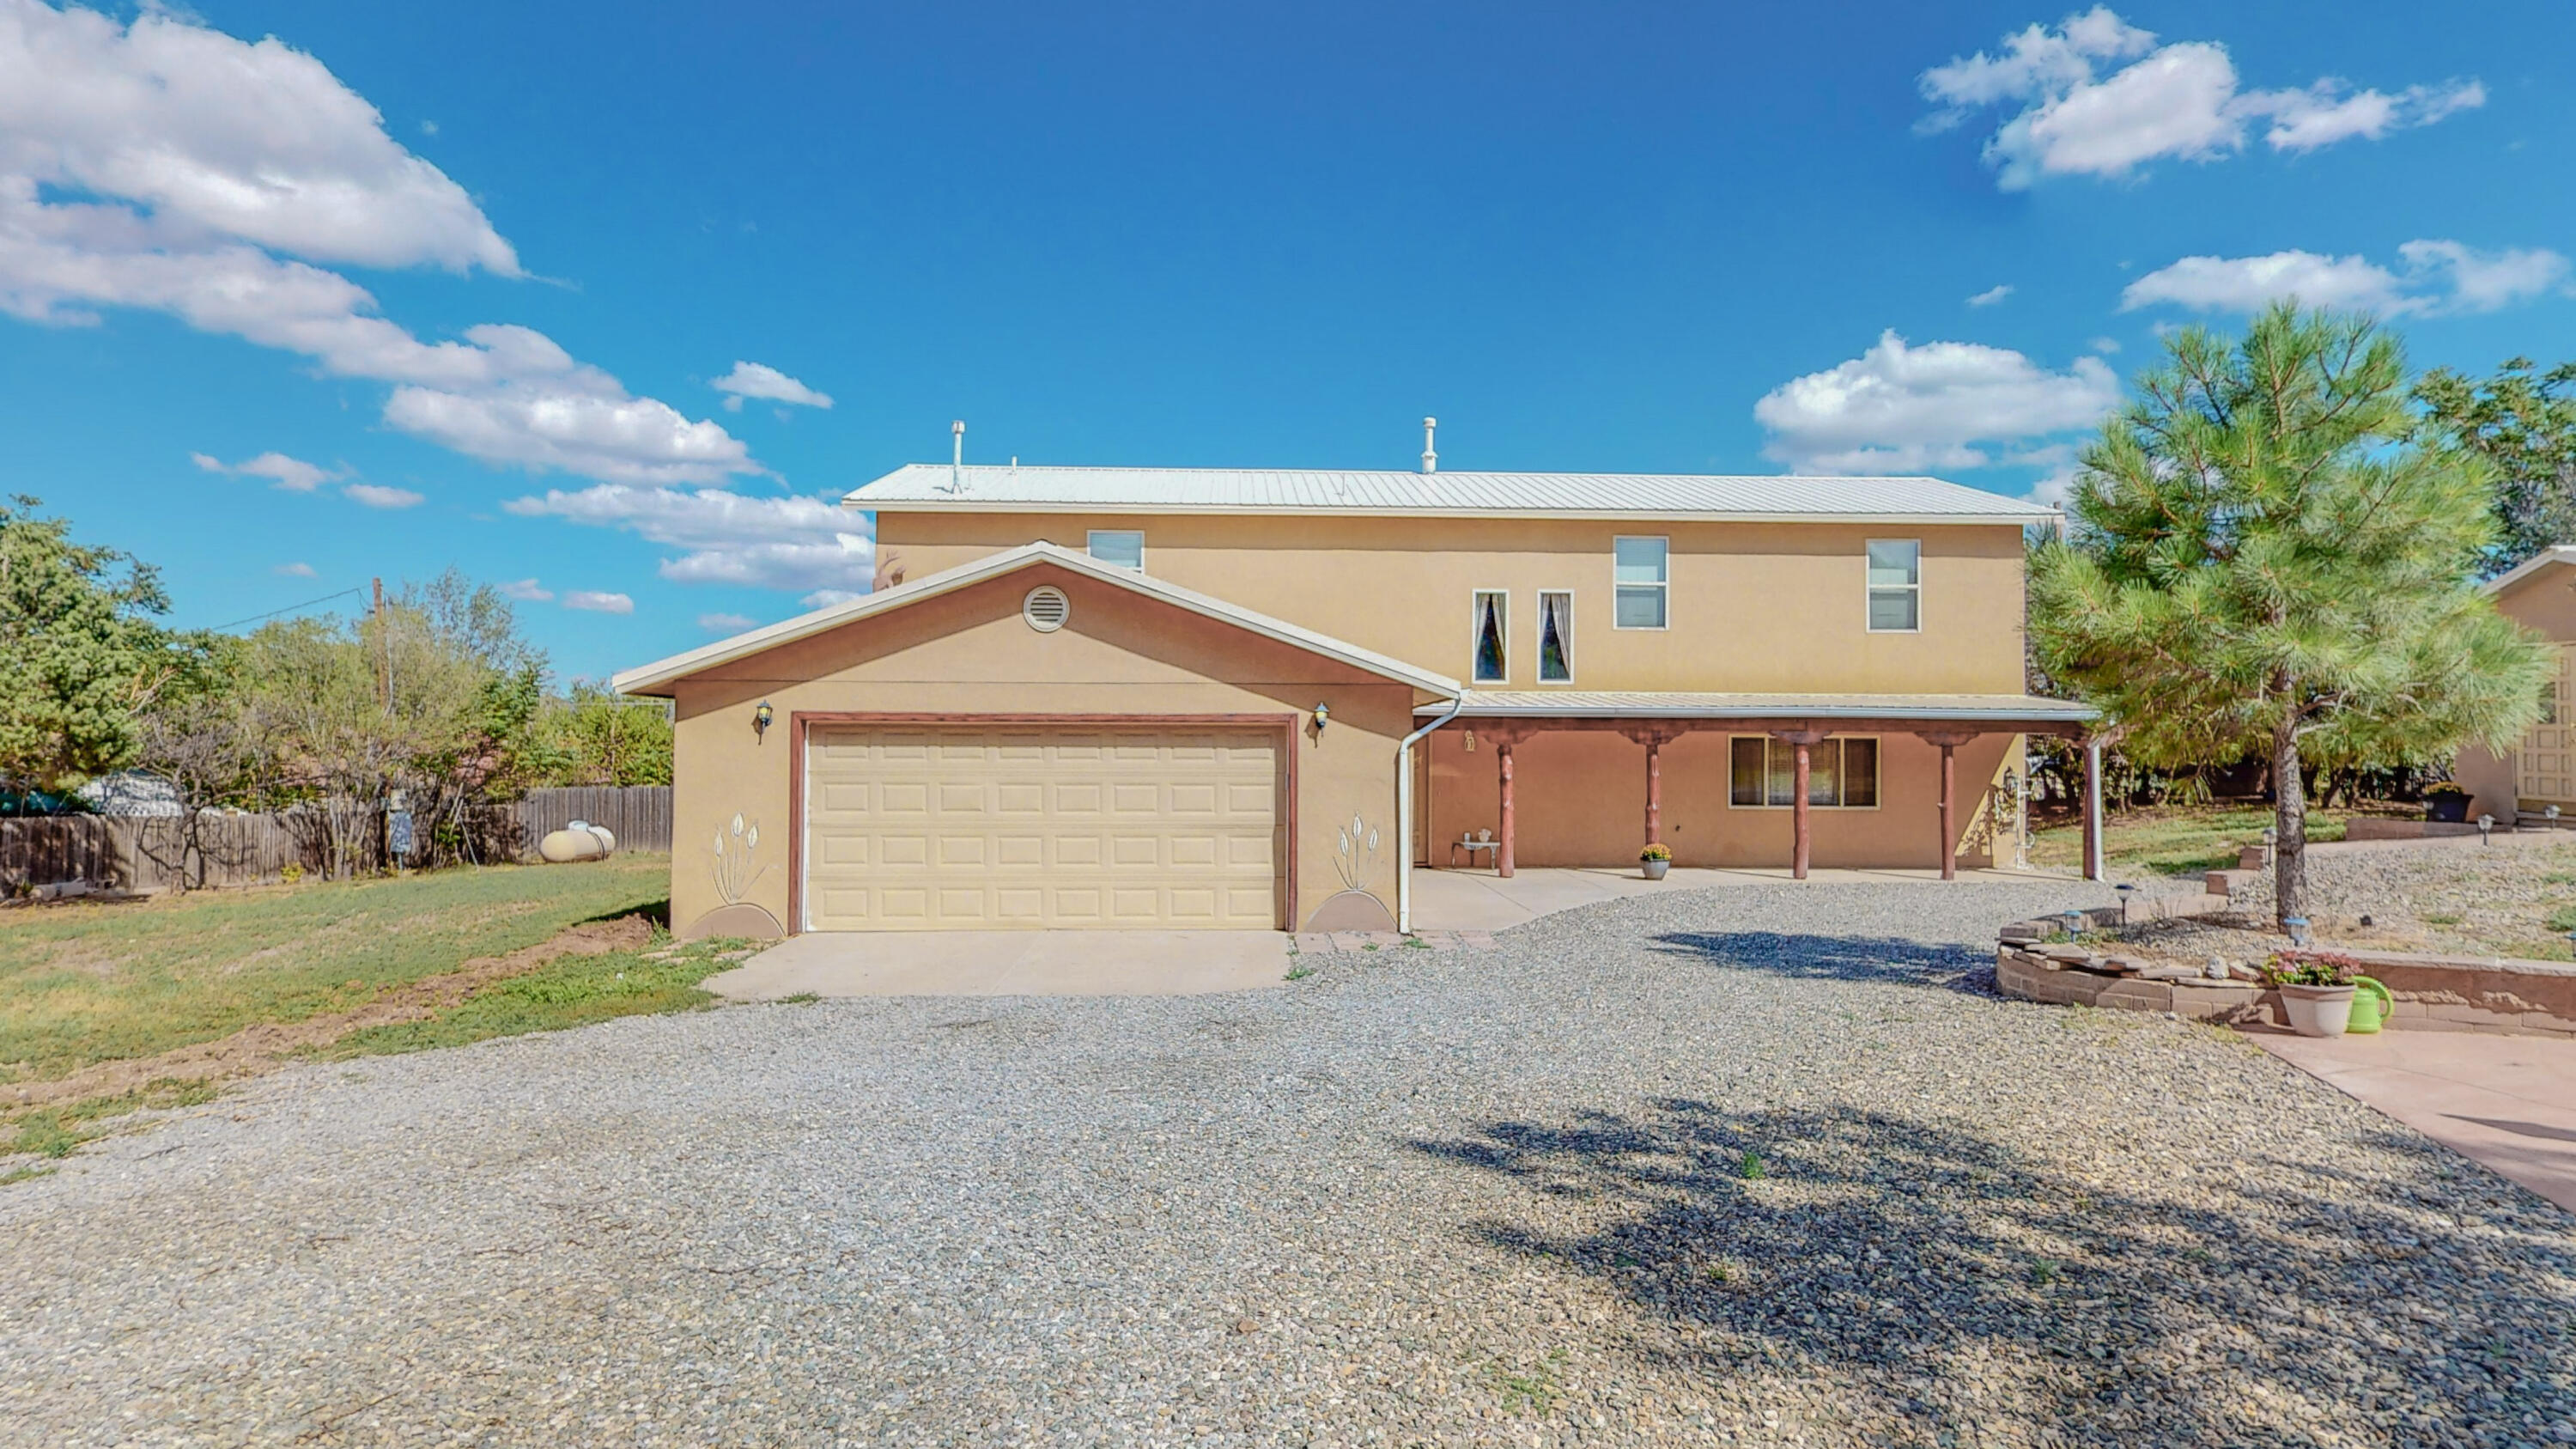 Welcome to this Beautiful Mountain Retreat located within minutes of the Sandia Ski Basin. Large living spaces, spacious bedrooms, Refrigerated air and stainless steel appliances. Come see your future home today!